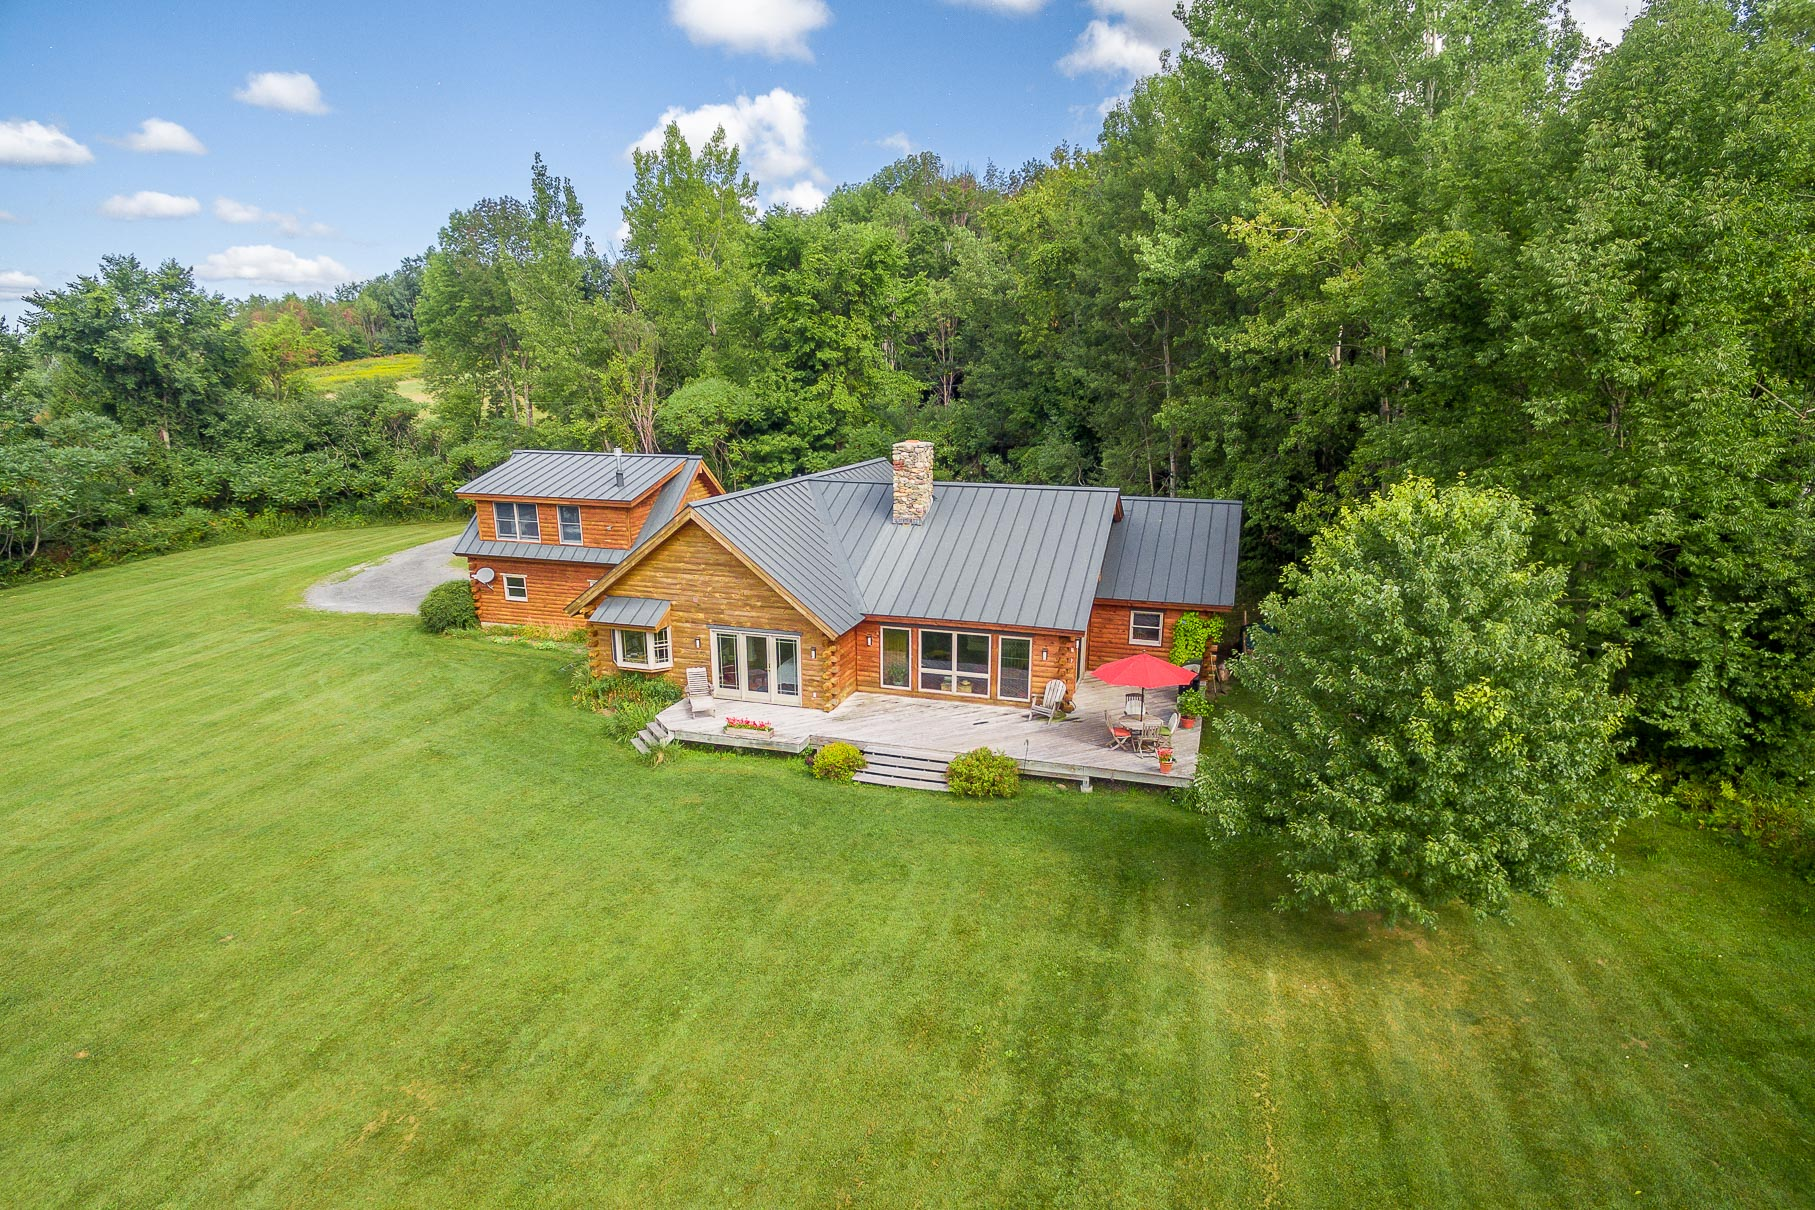 Single Family Home for Sale at Country Chic Log Home 55 Kelley Hill Rd Danby, 05739 United States